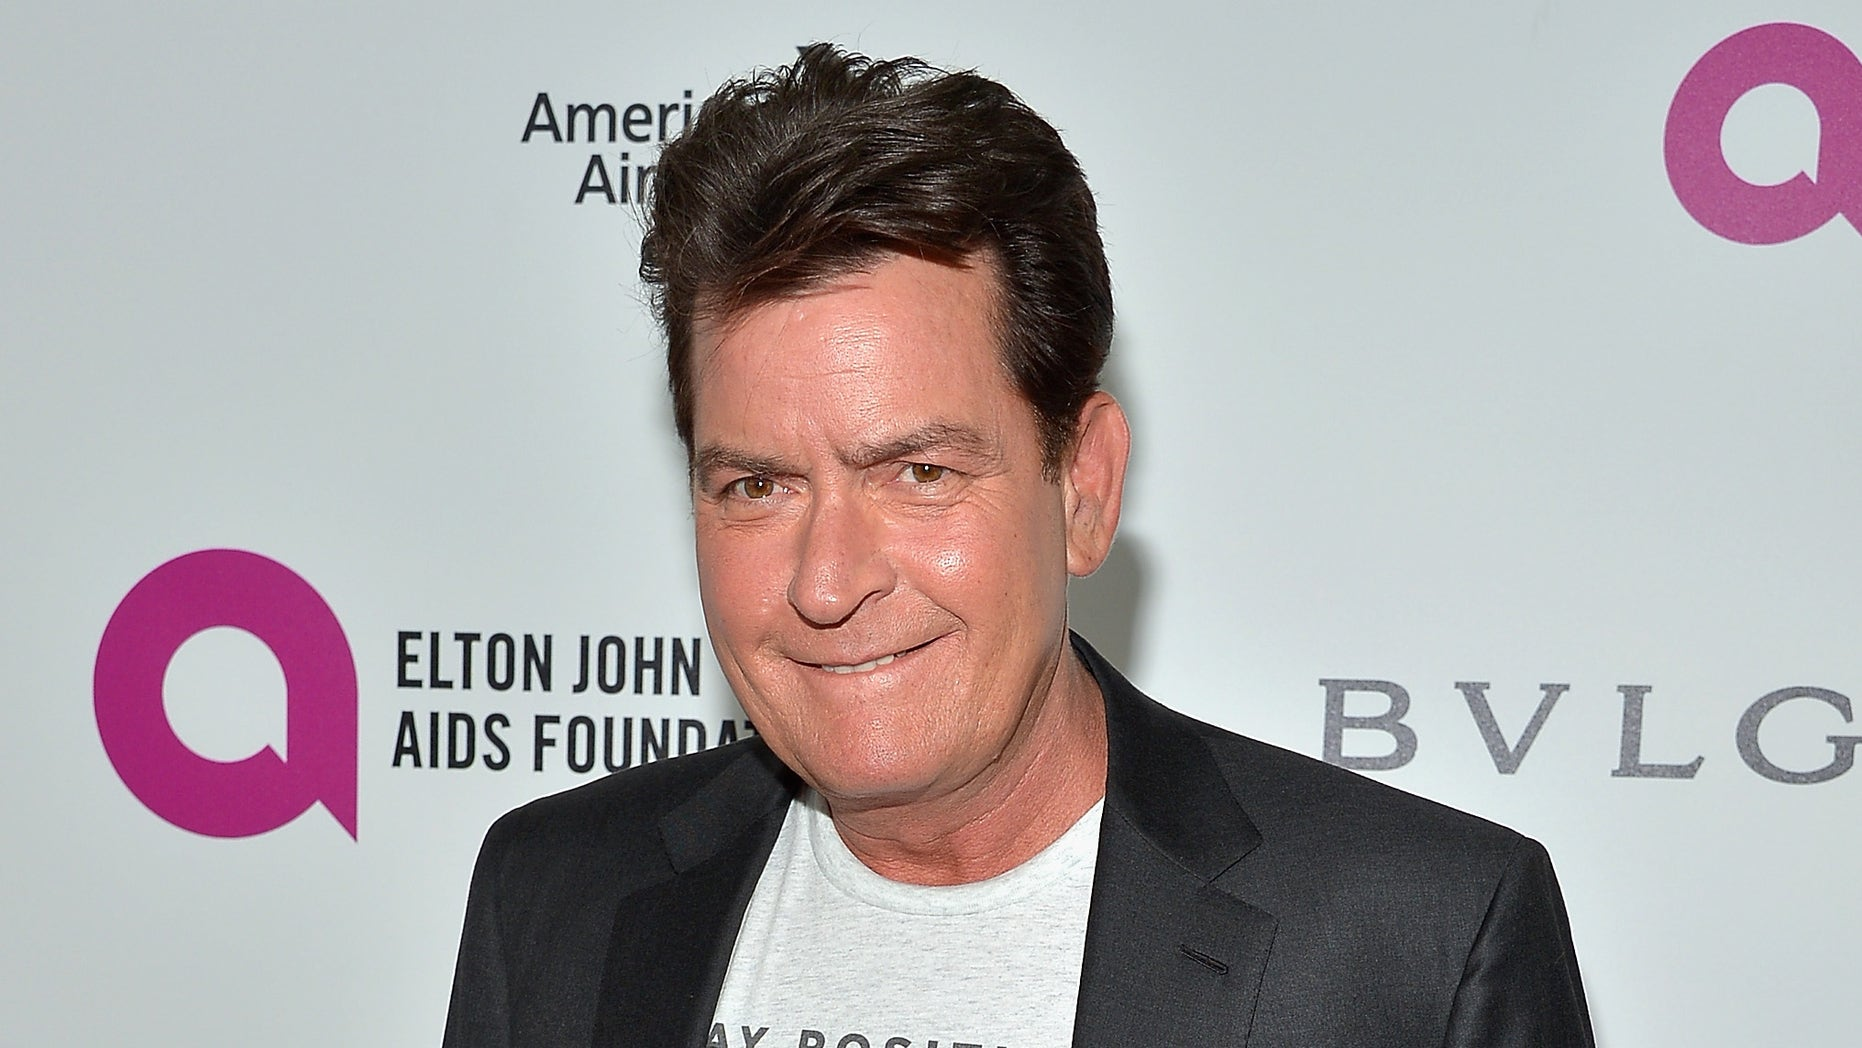 Charlie Sheen on February 28, 2016 in West Hollywood, California.